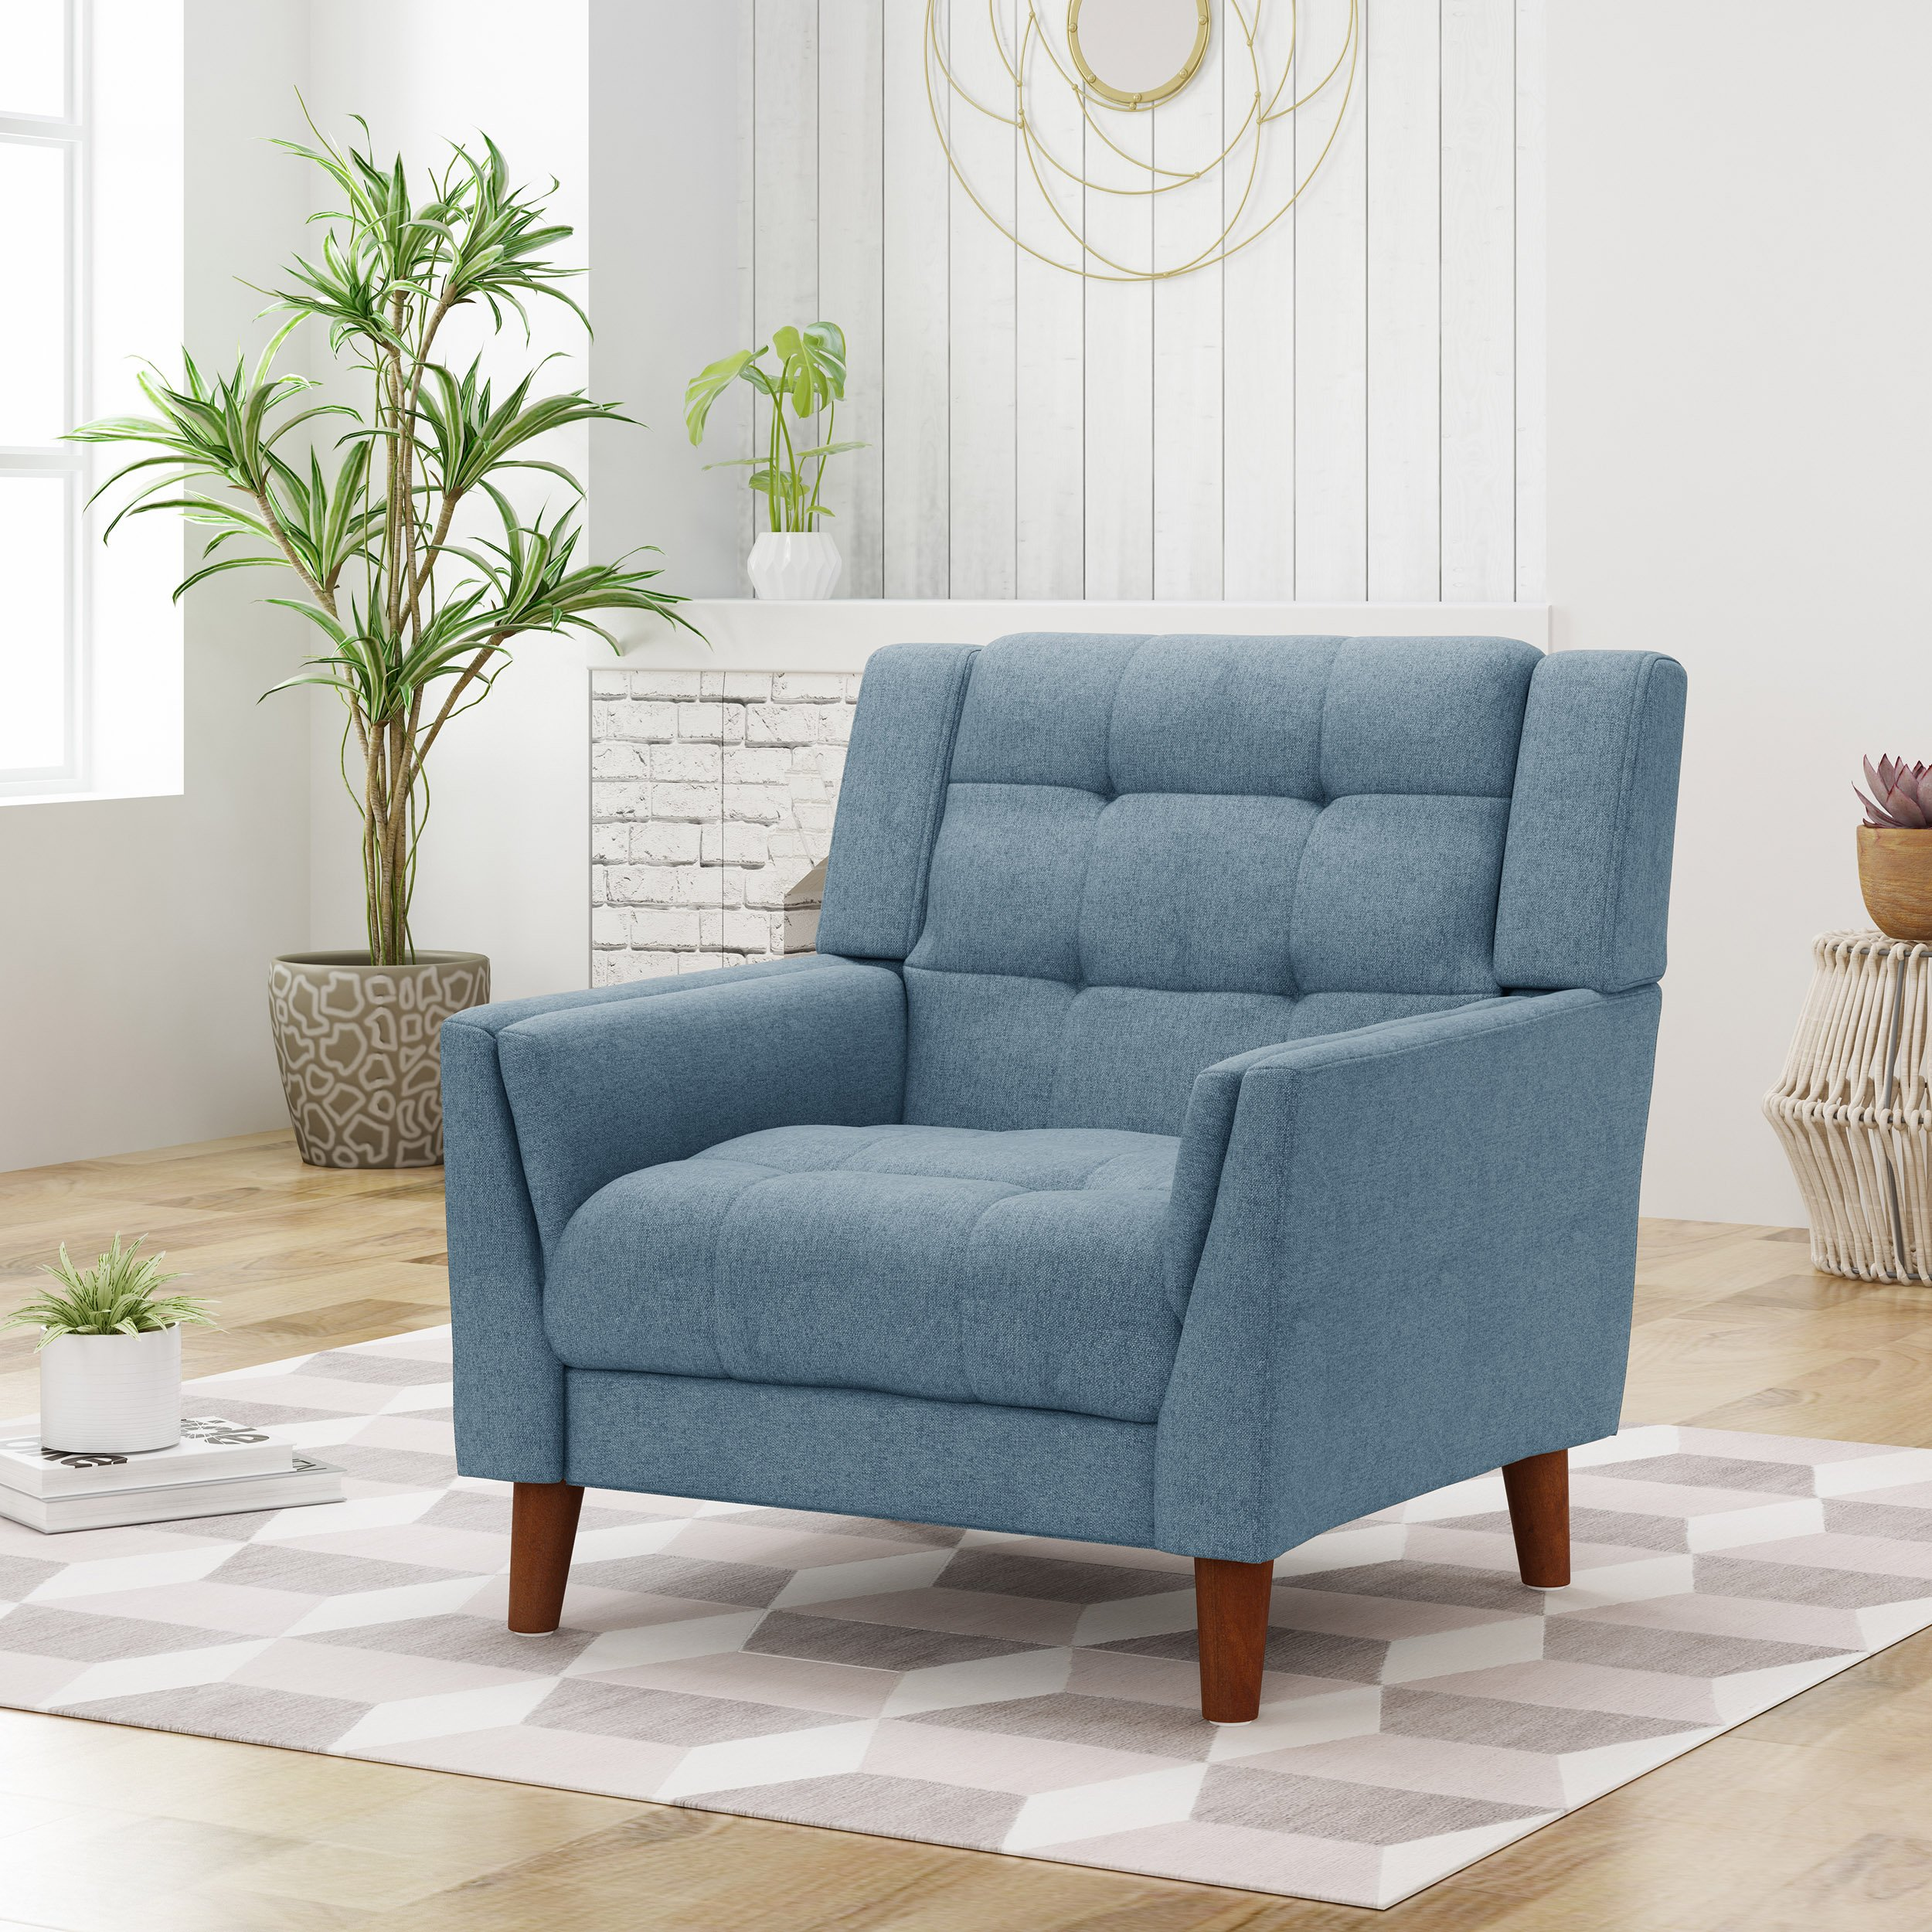 Christopher Knight Home Alisa Mid Century Modern Fabric Arm Chair, Blue, Walnut by Christopher Knight Home